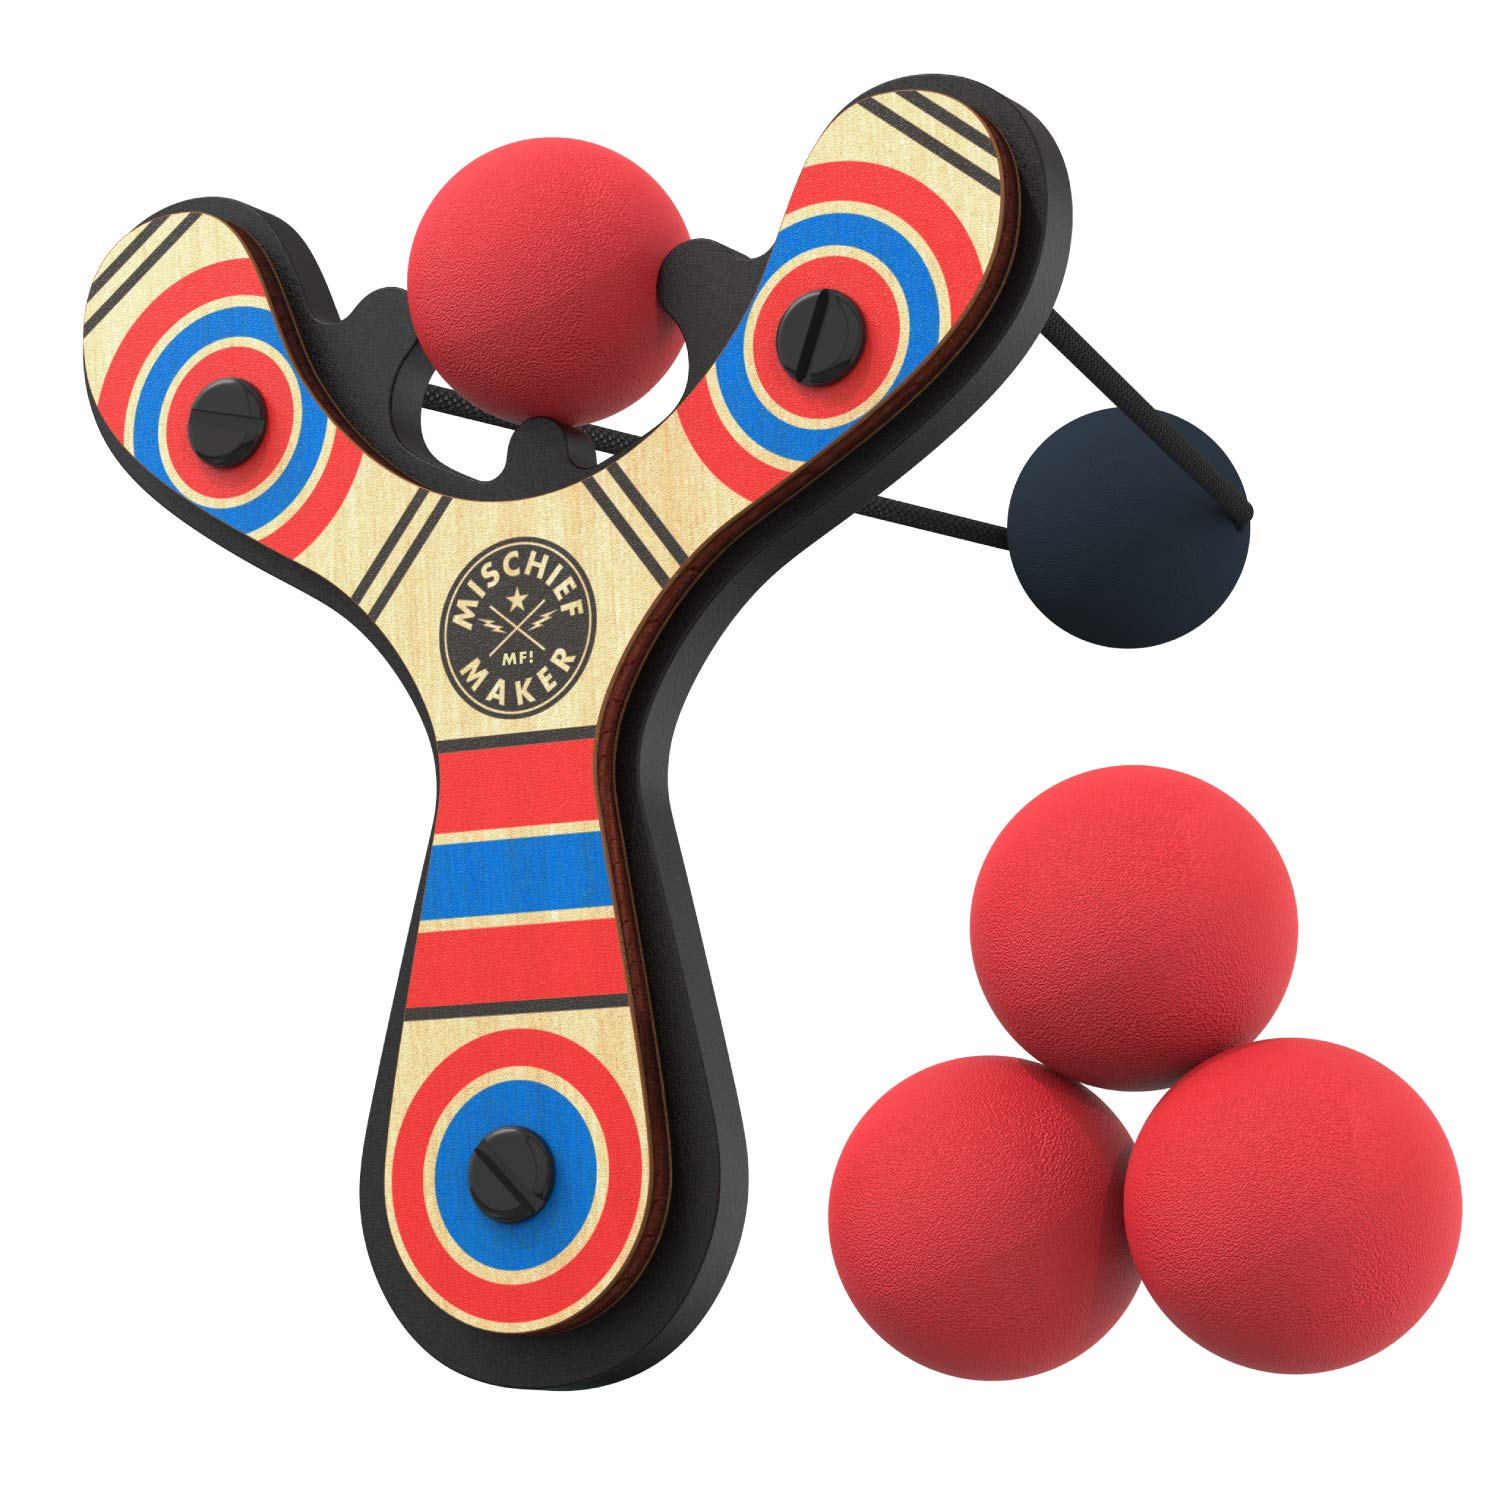 Mighty Fun! Mischief Maker Wooden Toy Slingshot Real Wood and Soft Foam Balls (Red Classic)